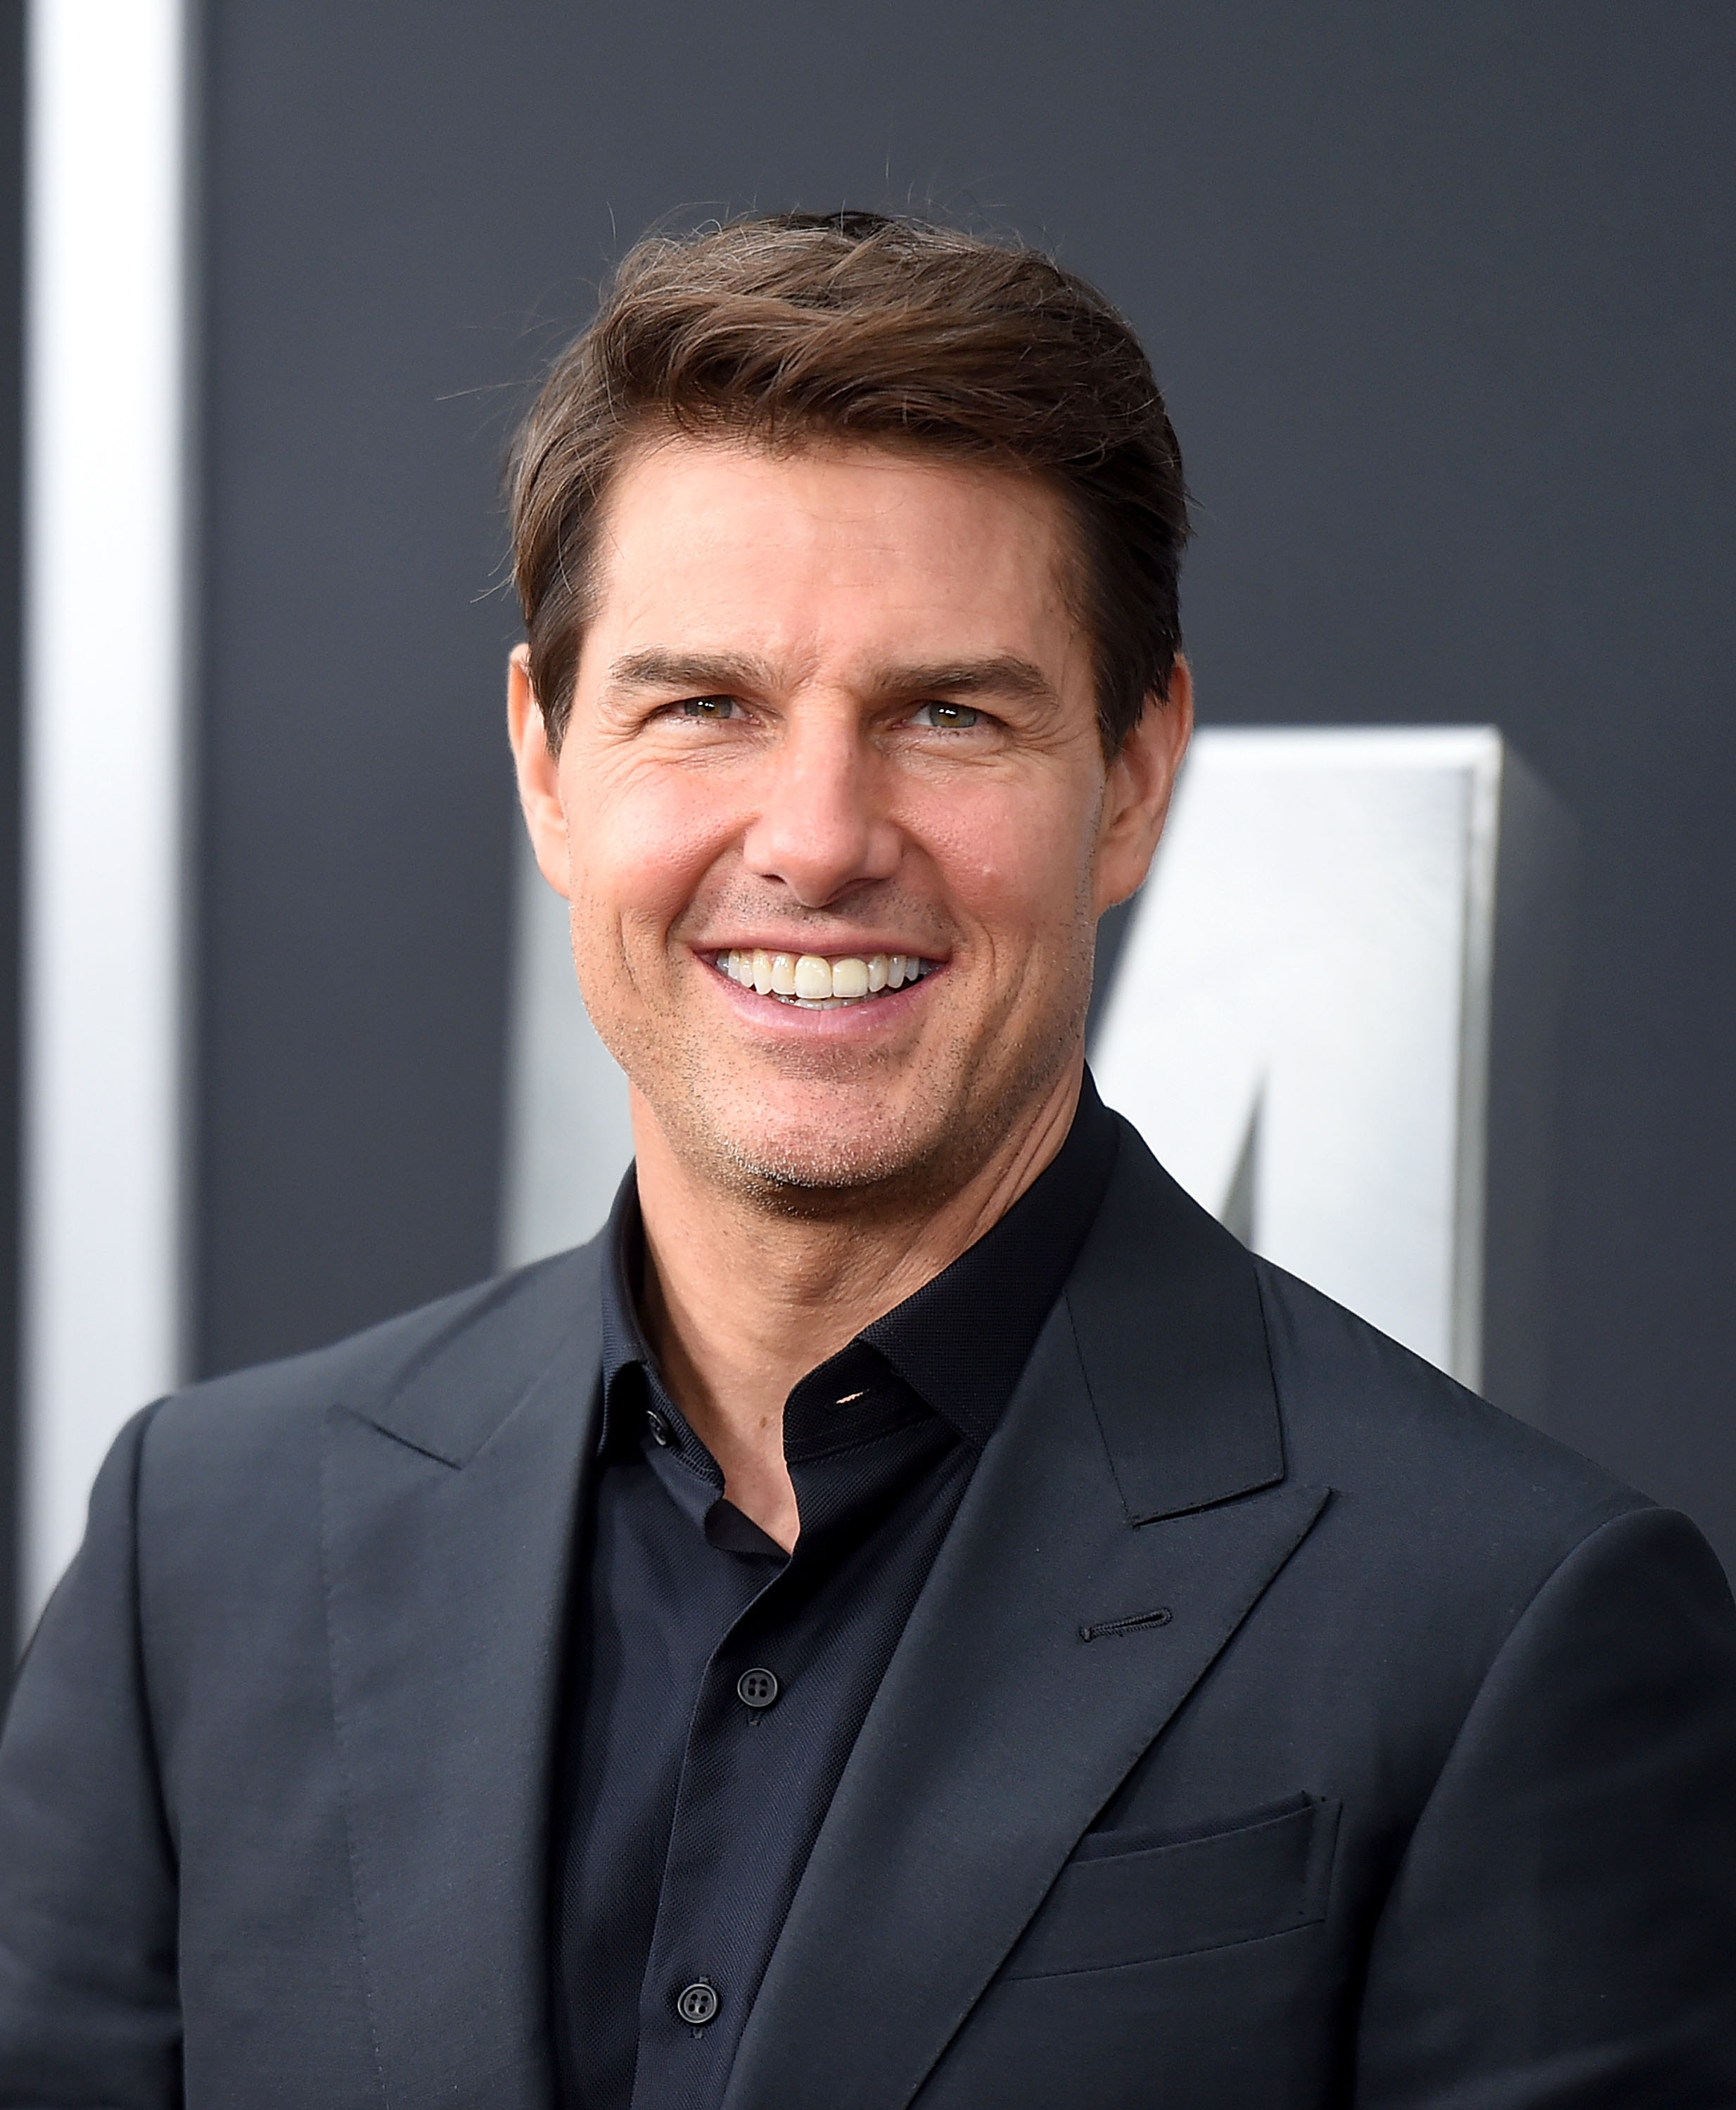 Tom Cruise attends the 'The Mummy' New York Fan event at AMC Loews Lincoln Square on June 6, 2017 in New York City.